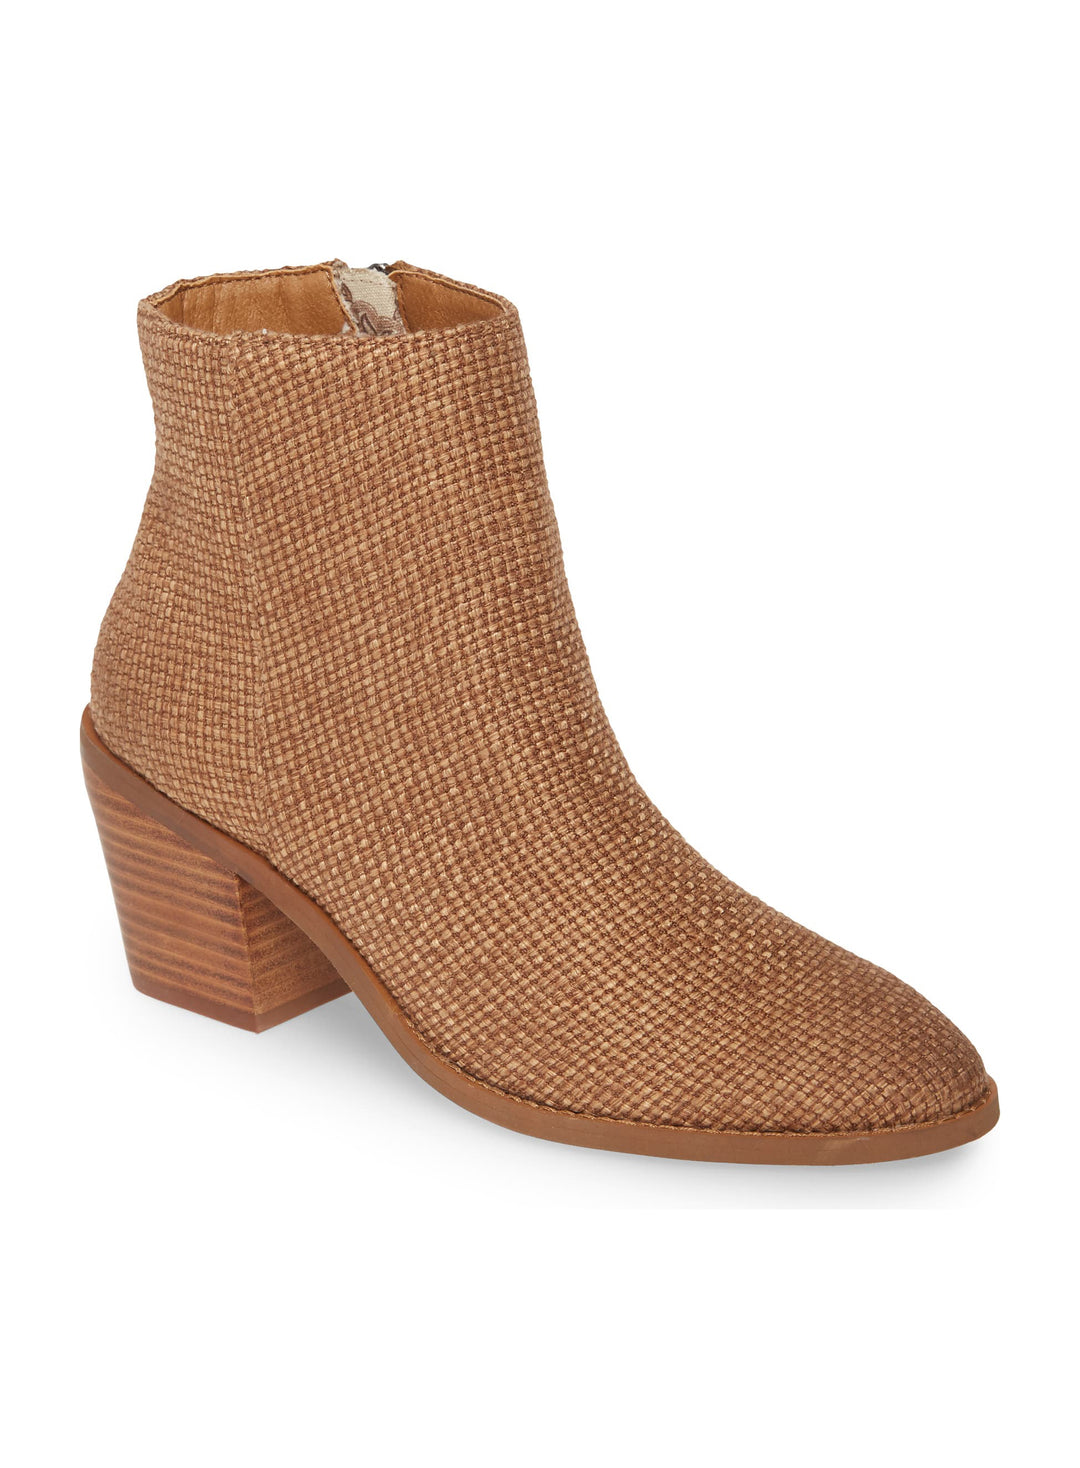 Loveland Brown Woven Jute Canvas Bootie